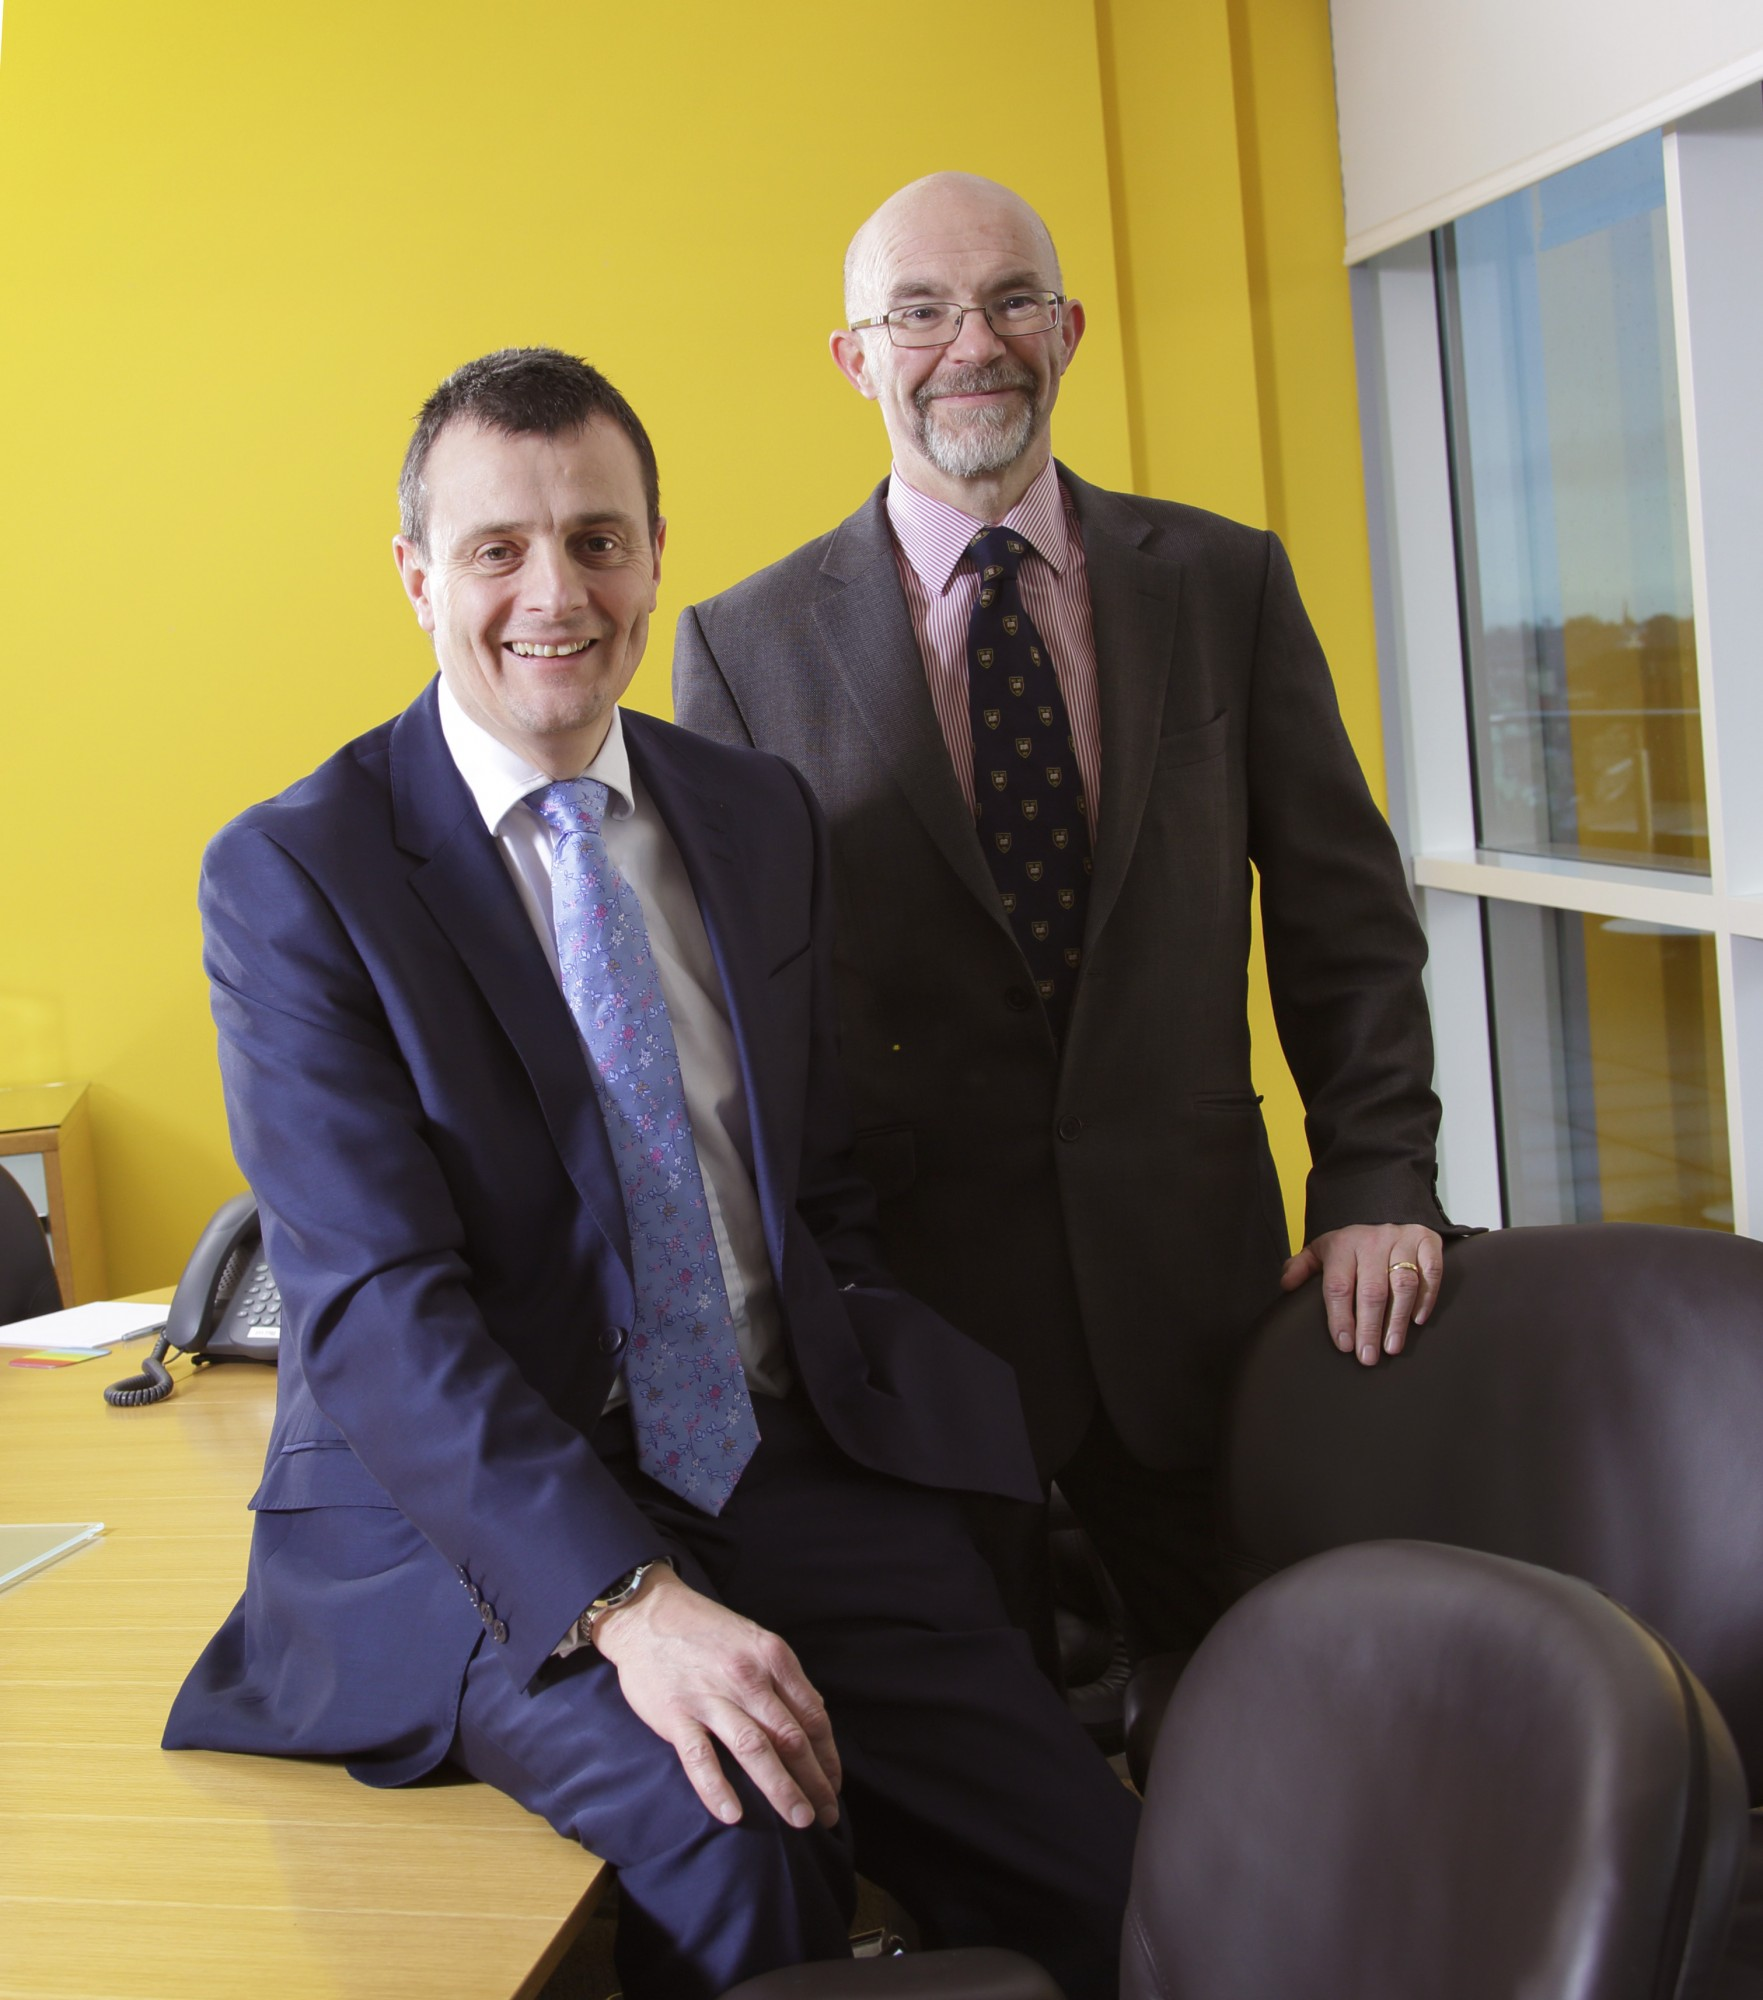 Keith Bishop and Robert Langley from Muckle LLP